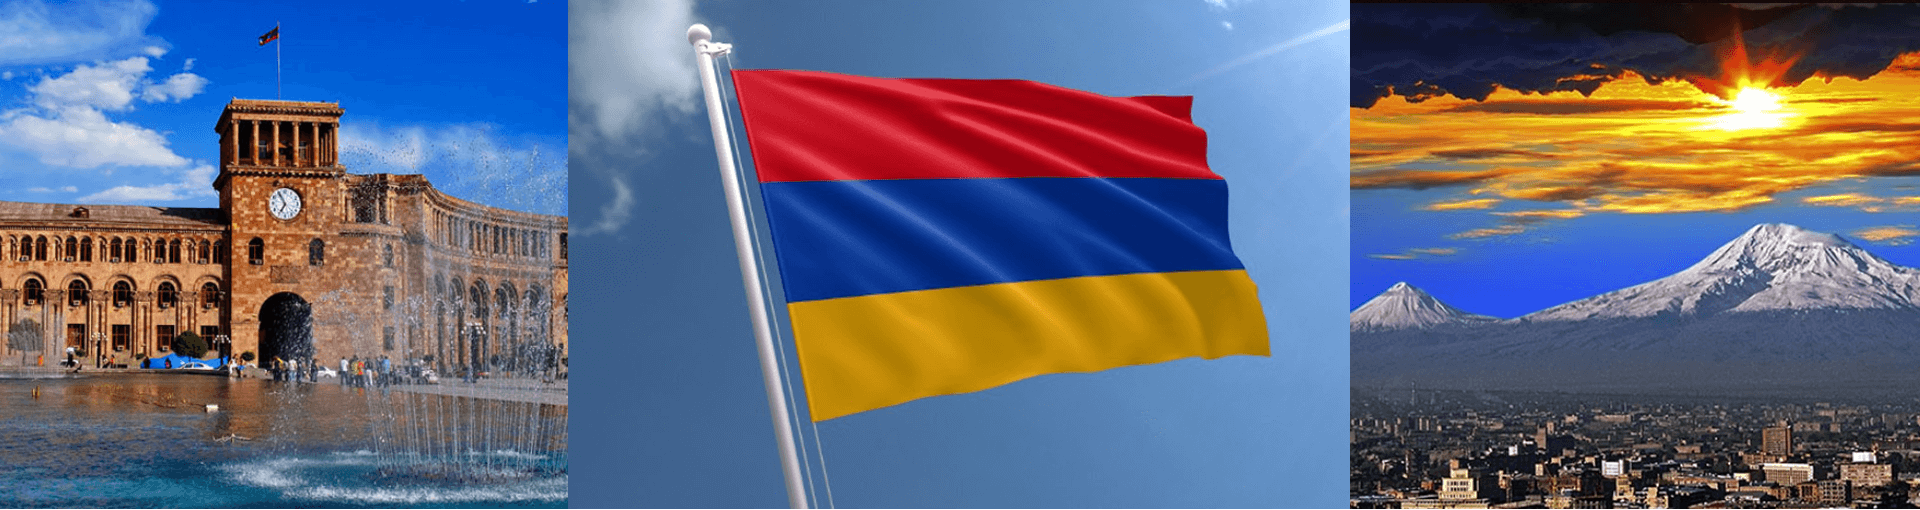 Armenian National Flag